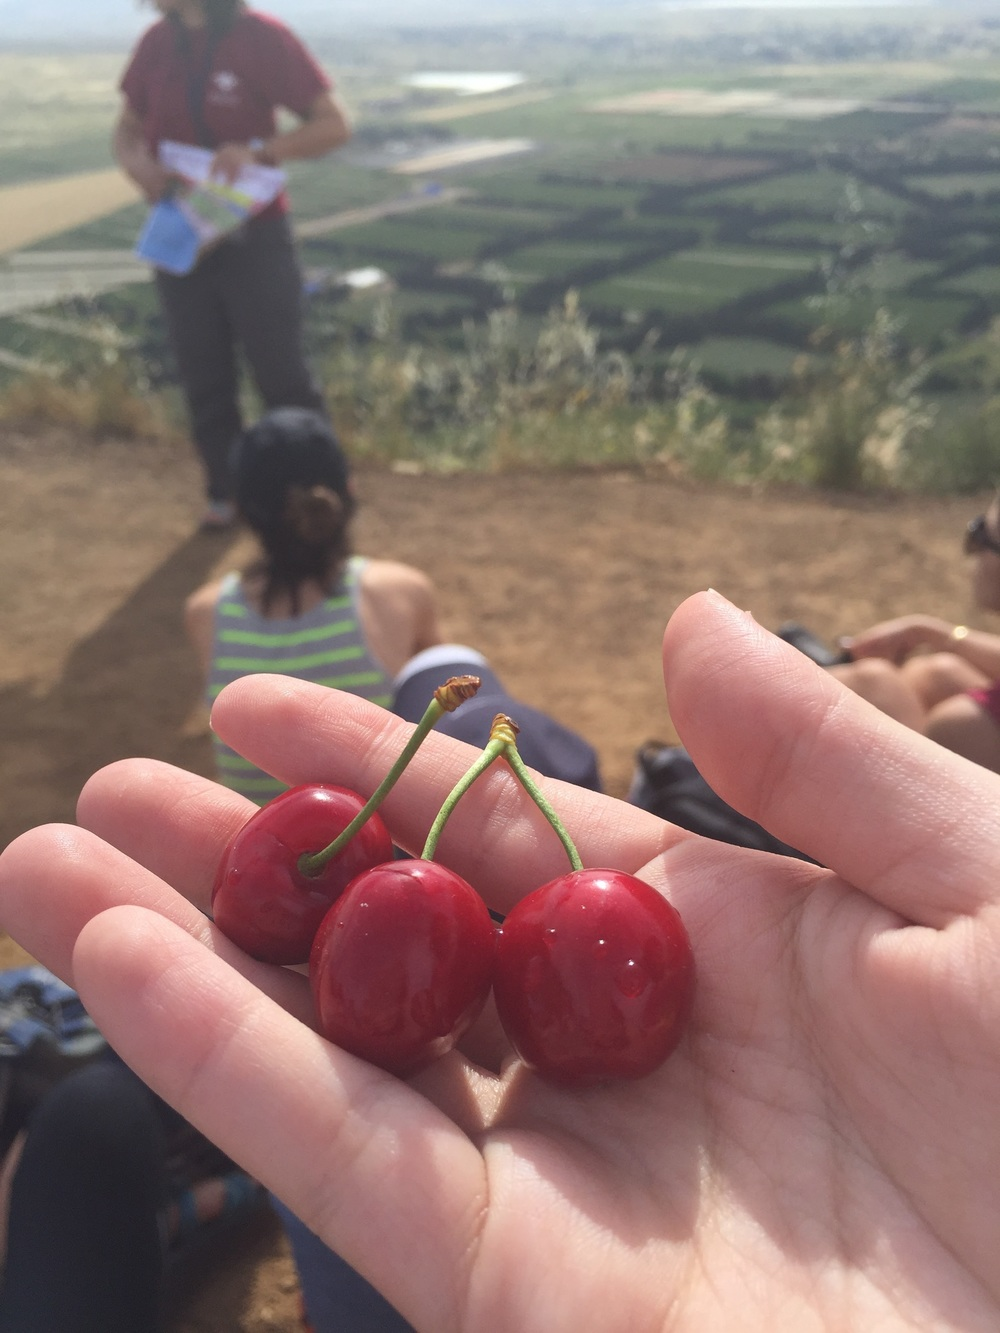 Cherries purchased on the side of a road on top of a mountain